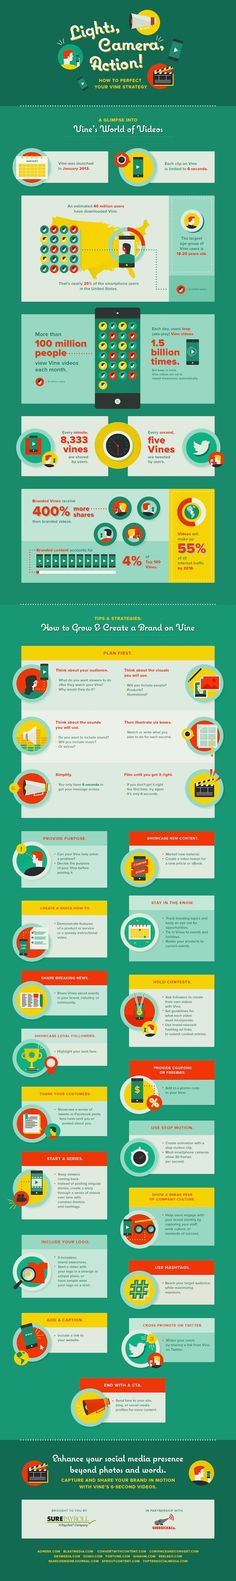 #Infographic How to Use Vine: A Simple Guide to Building an Effective Social Video Strategy